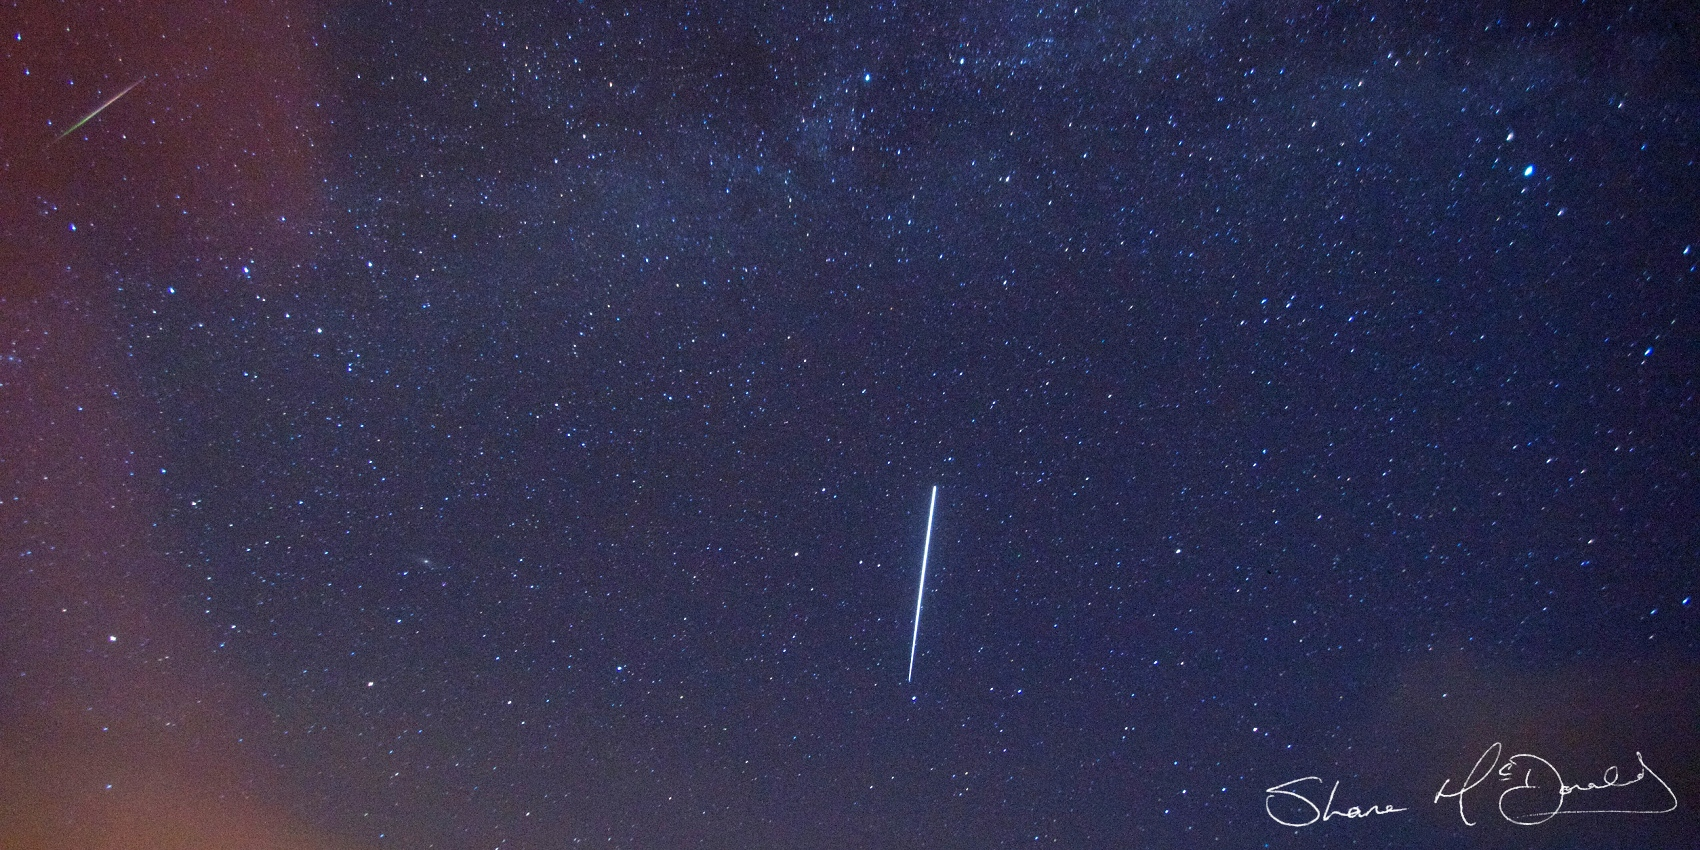 Peresid Meteor Shower - How to photograph the peresid / persid meteor shower